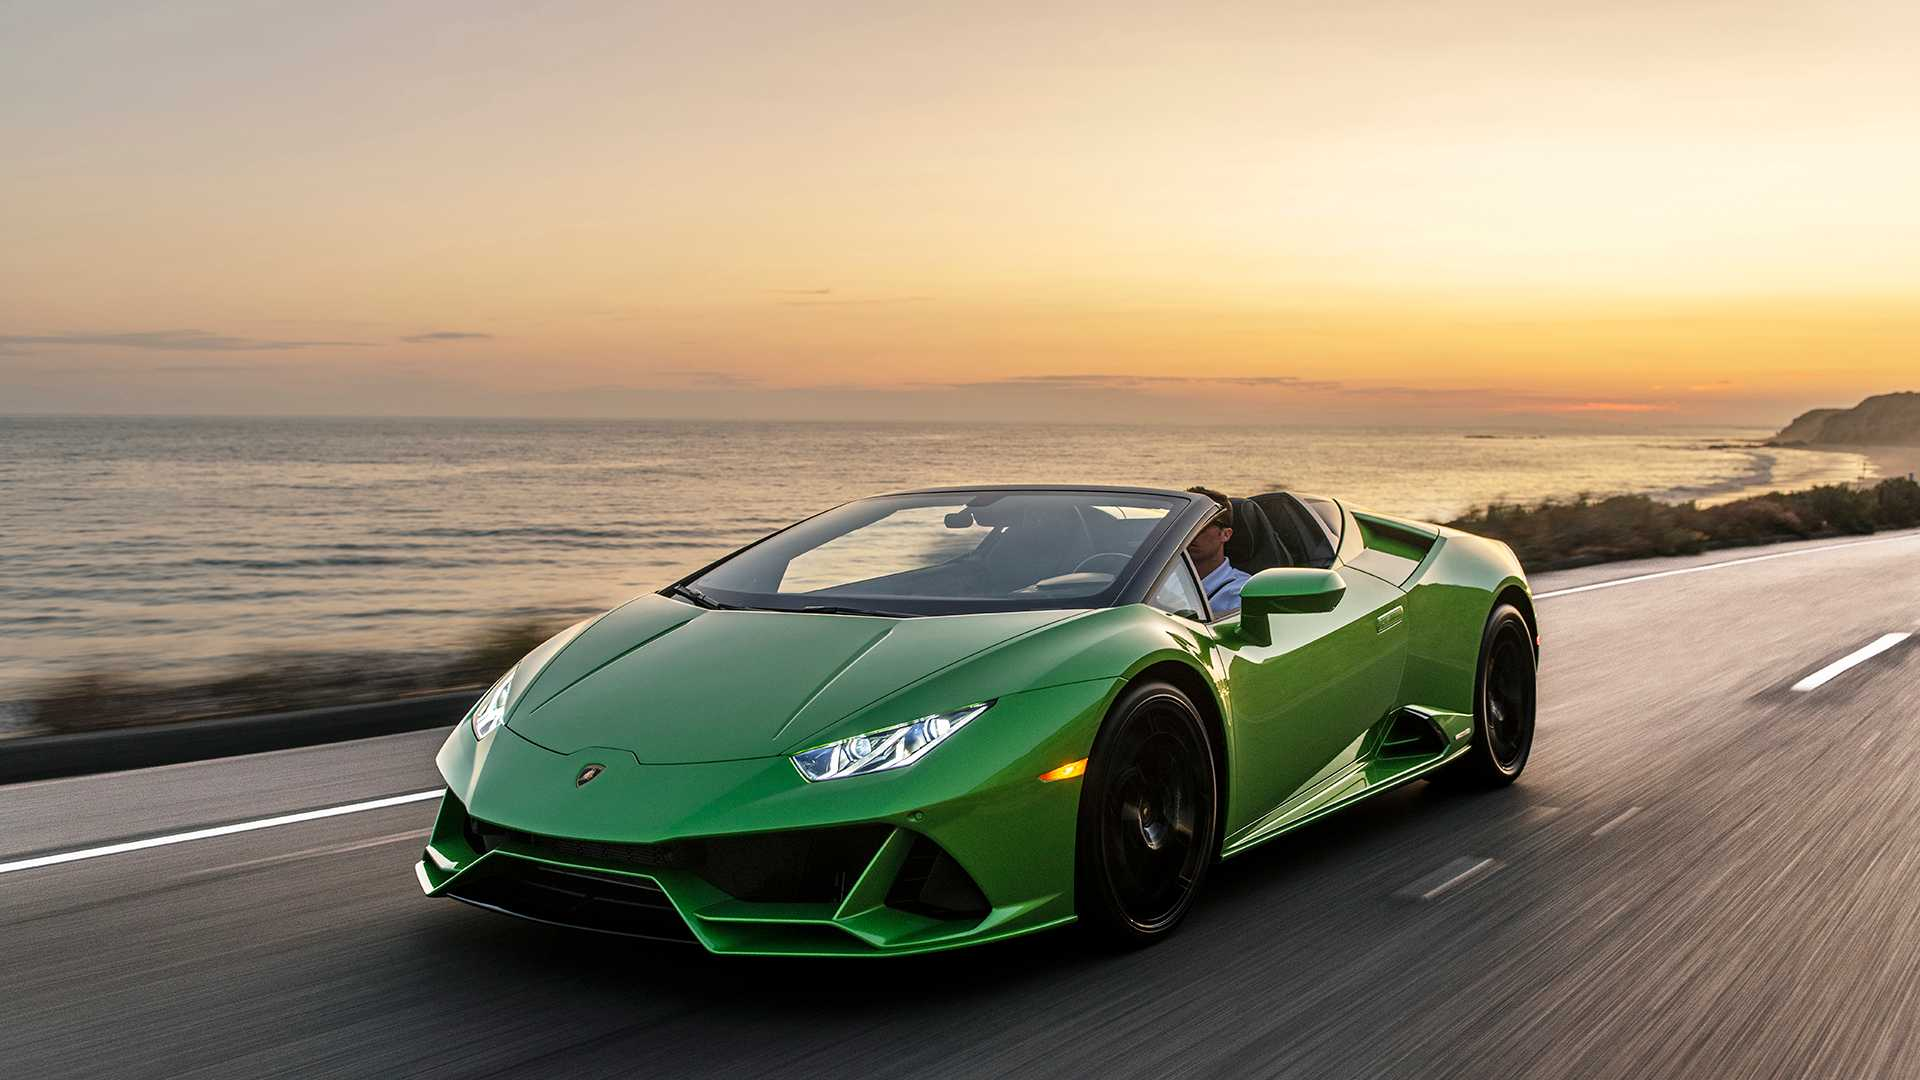 VW Group Reportedly Interested In Selling Lamborghini [UPDATE]